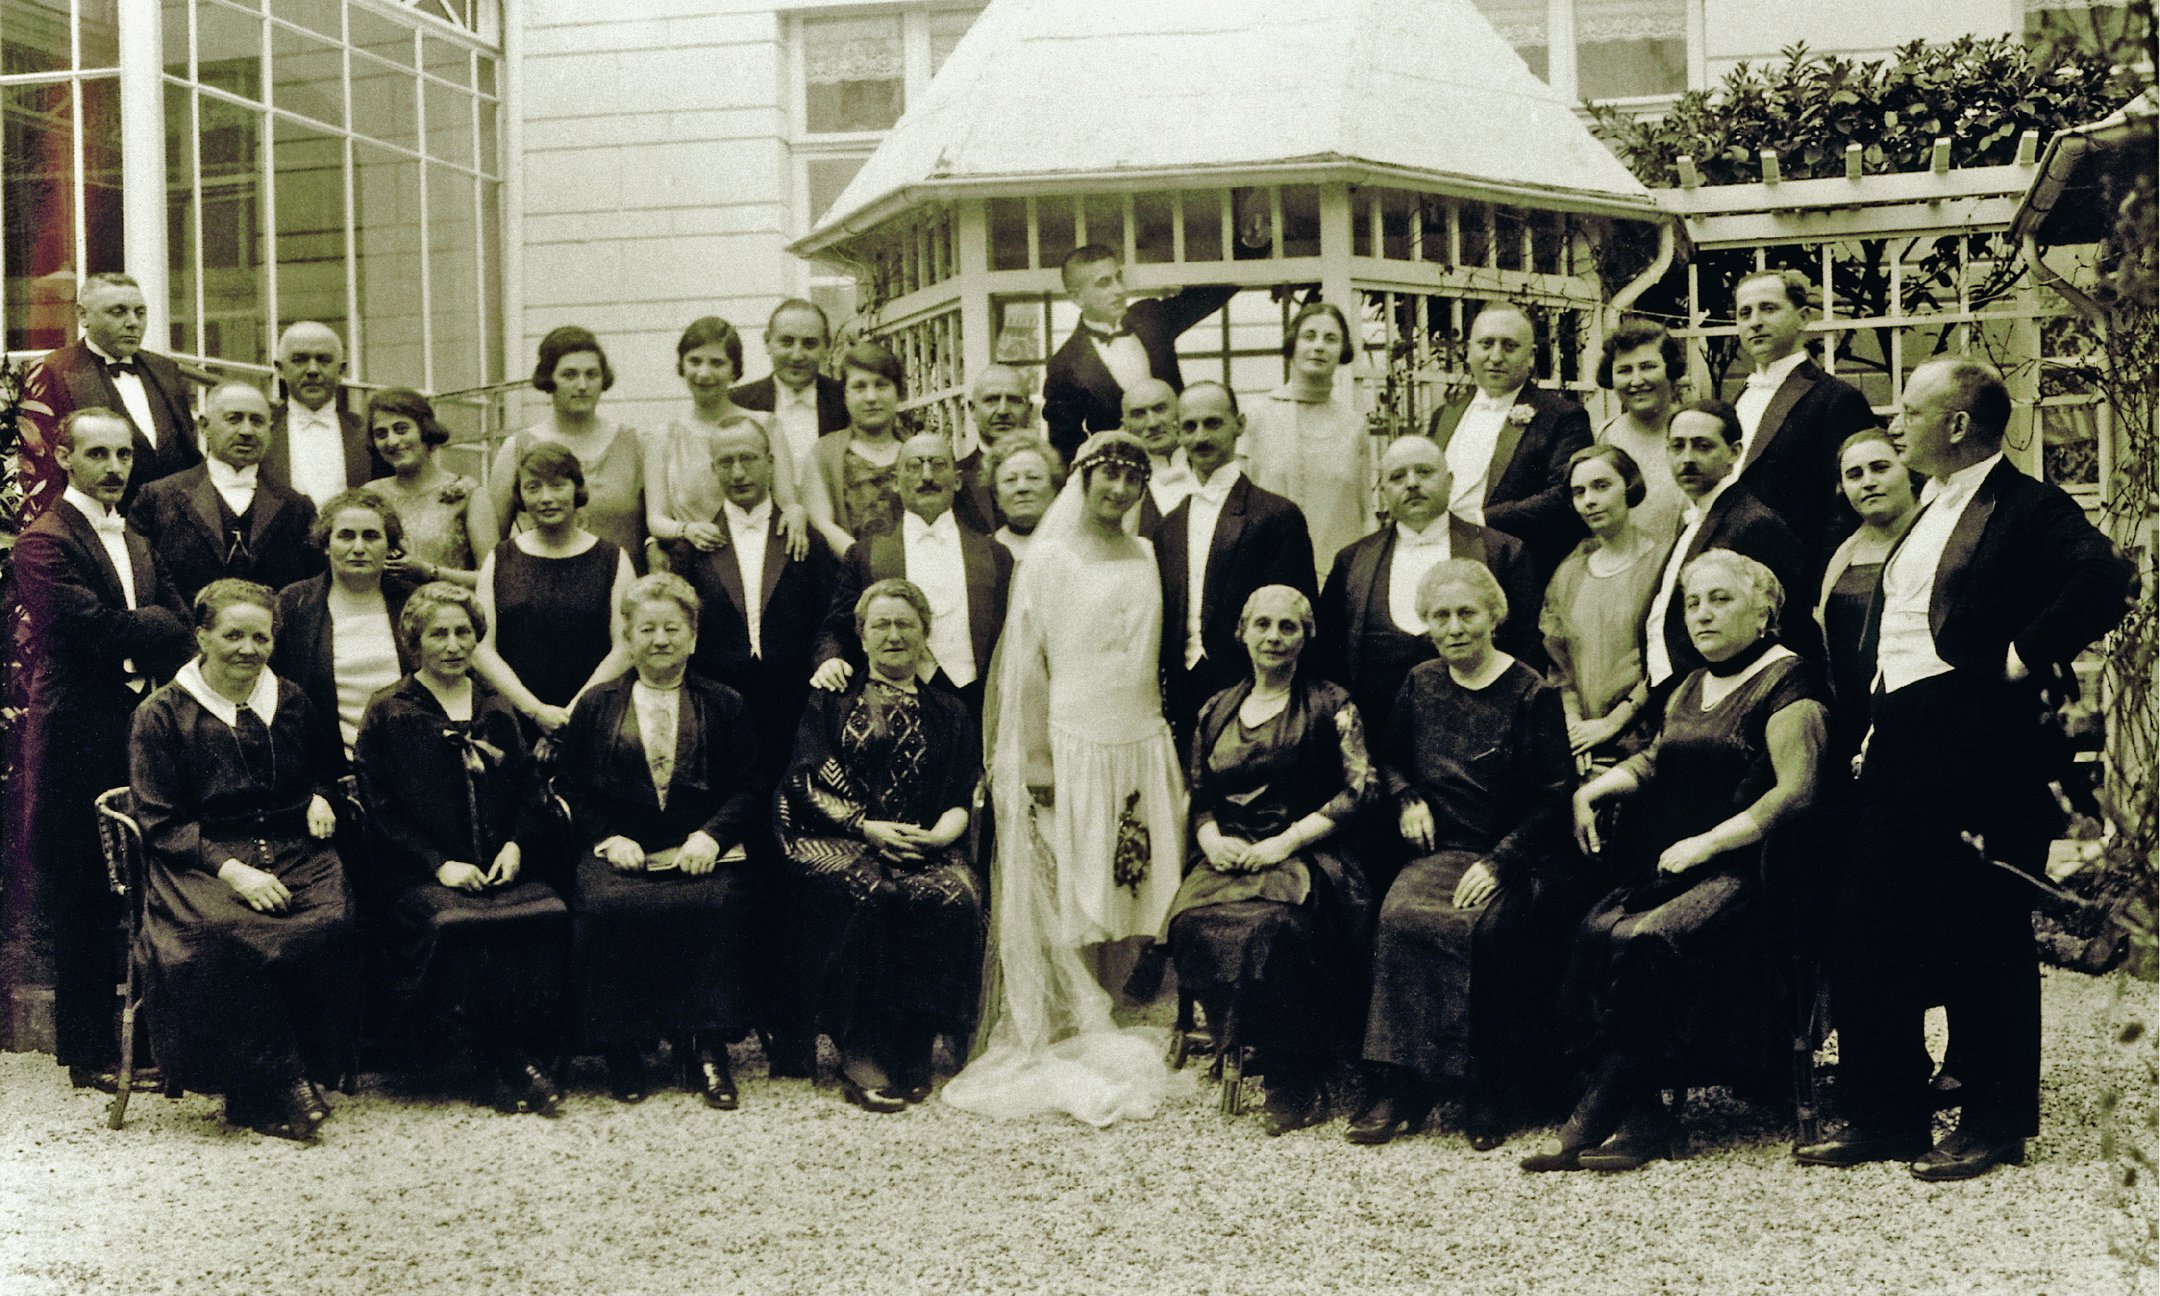 Otto and Edith Frank with their wedding guests, 12 May 1925.